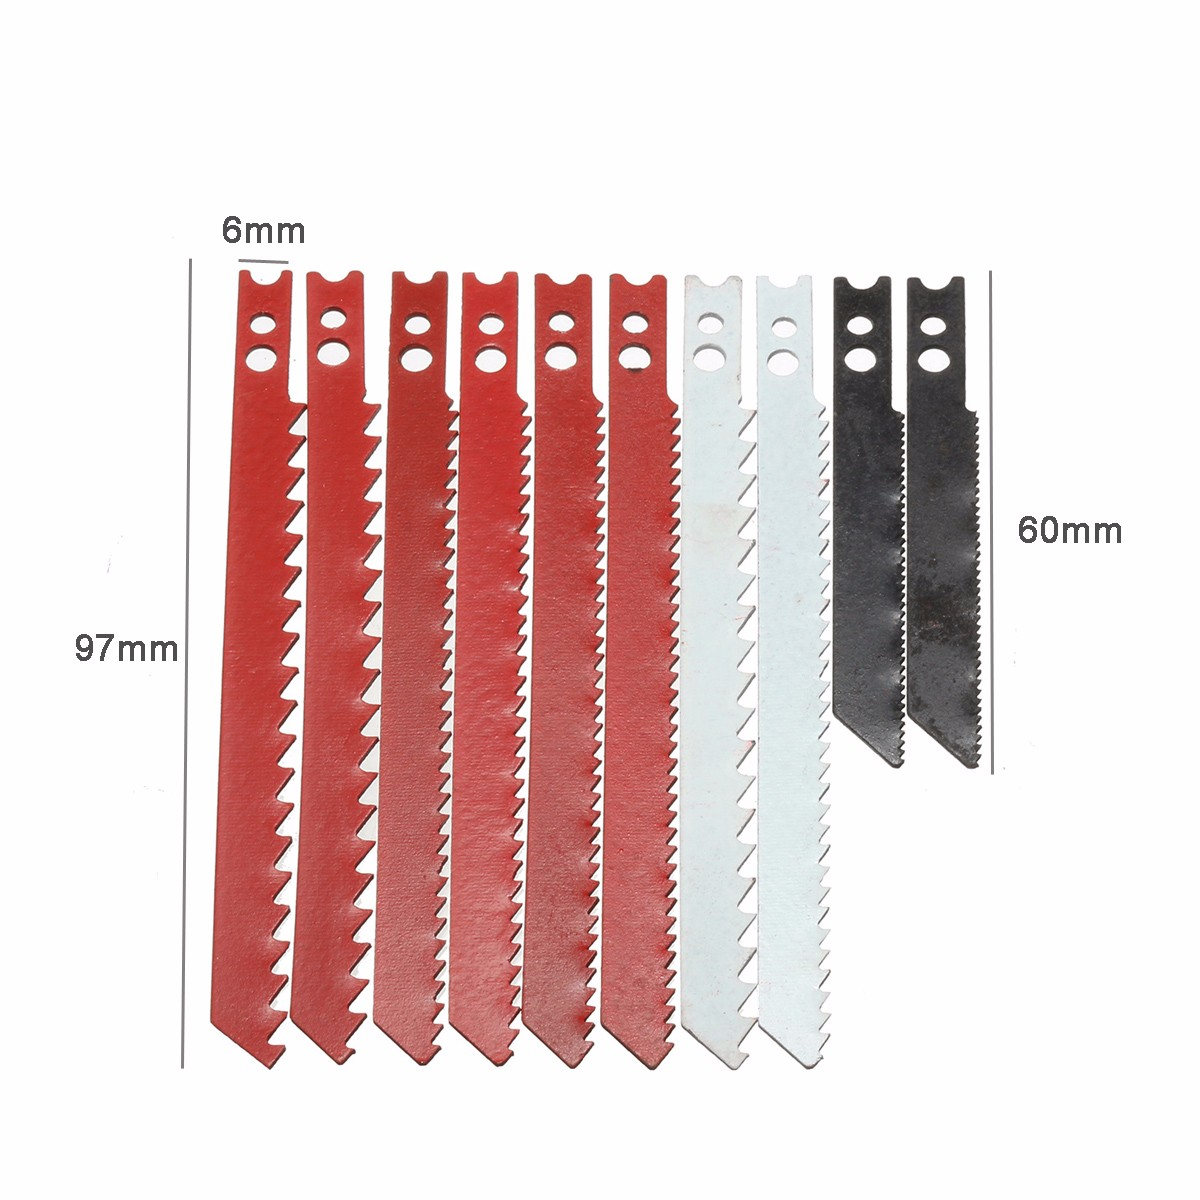 10pcs Saw Blade Set for Black & Decker Jigsaw Metal Plastic Wood Blades